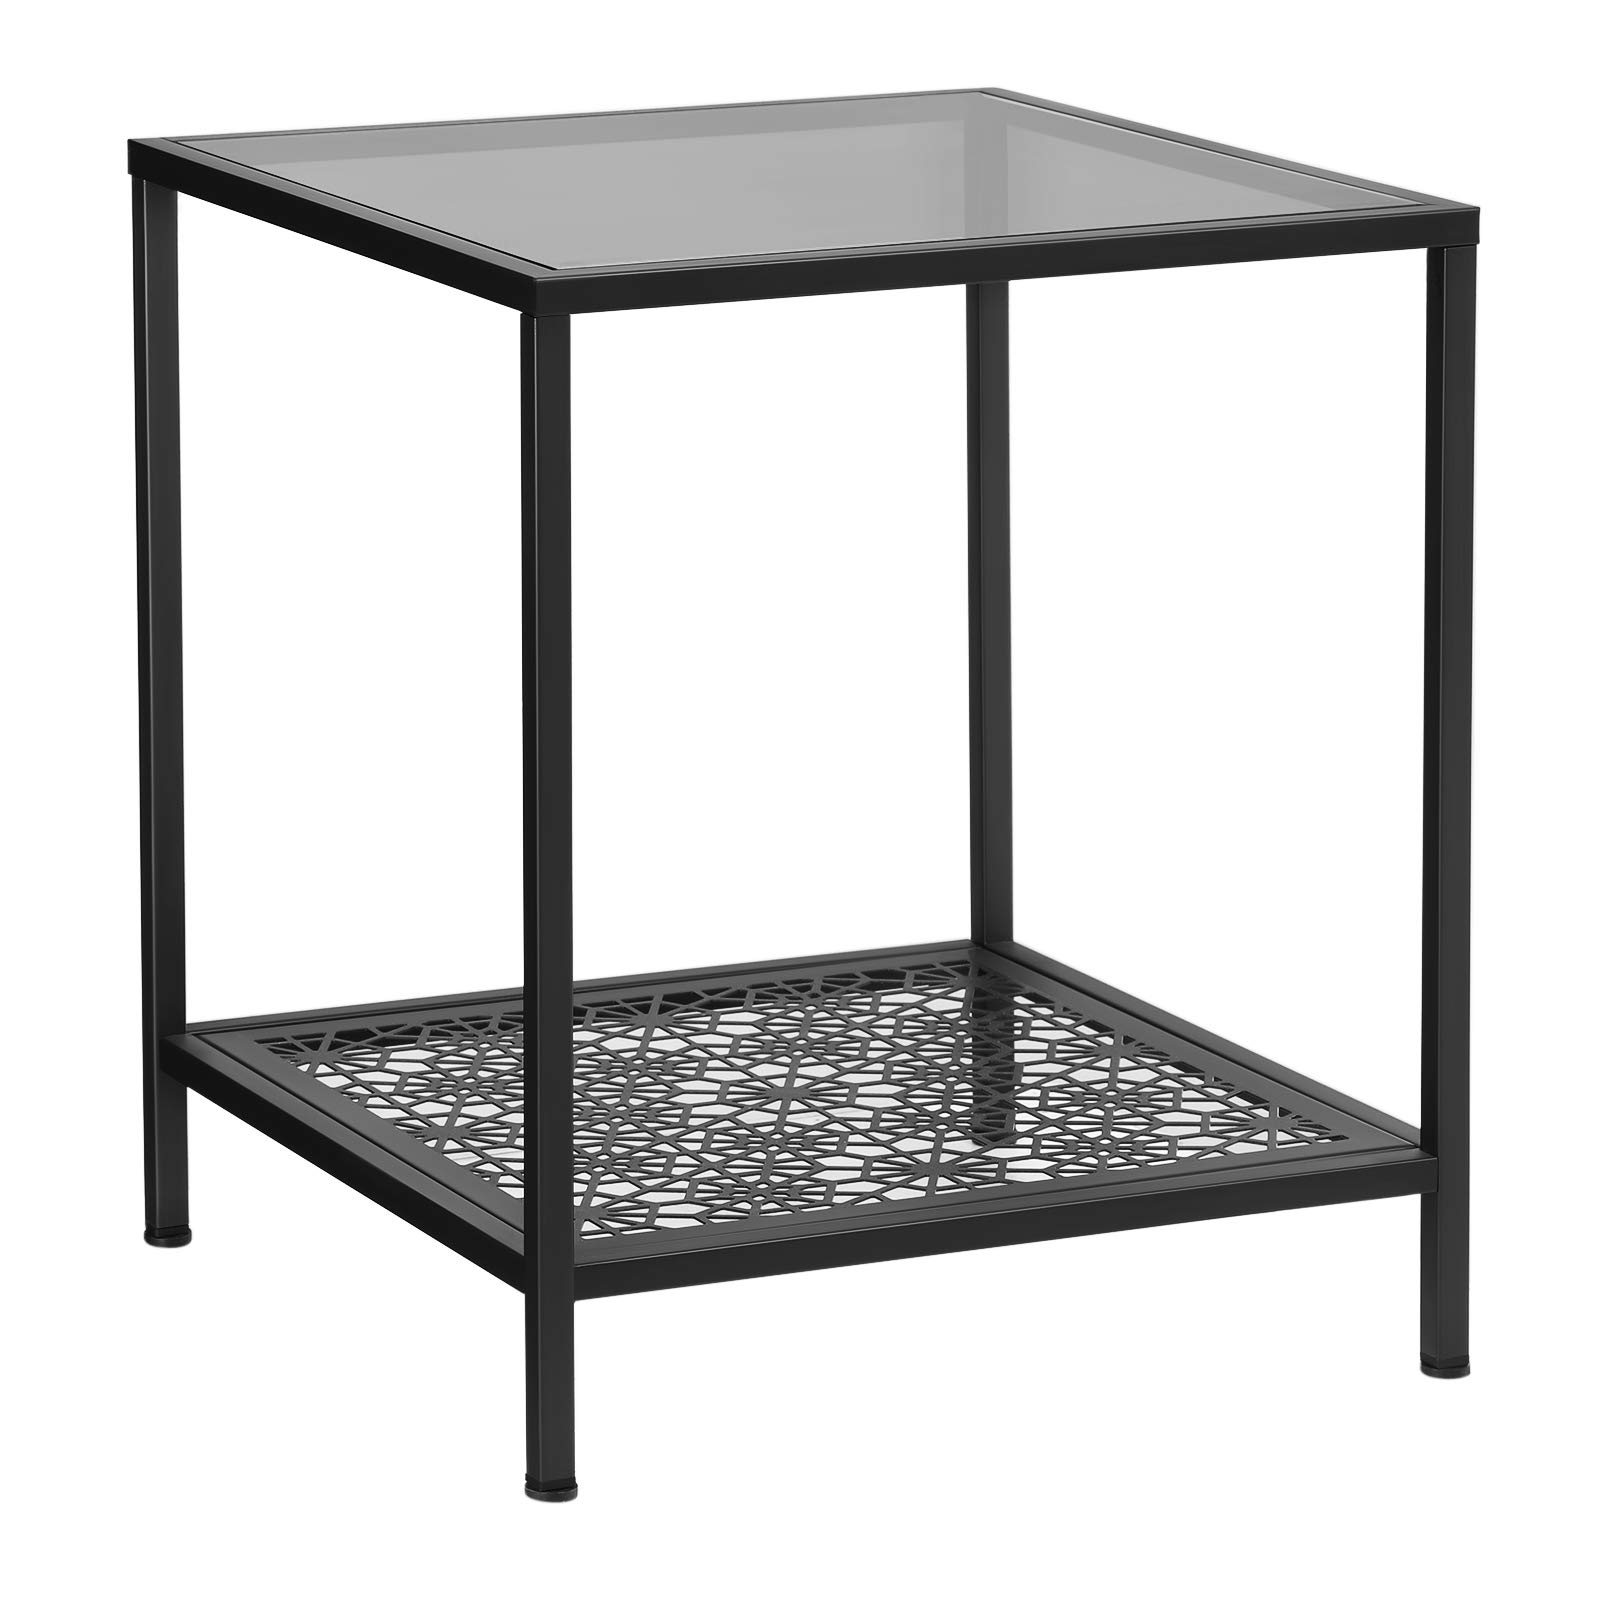 SONGMICS ULGT01BK Side Table Glass, Black by SONGMICS